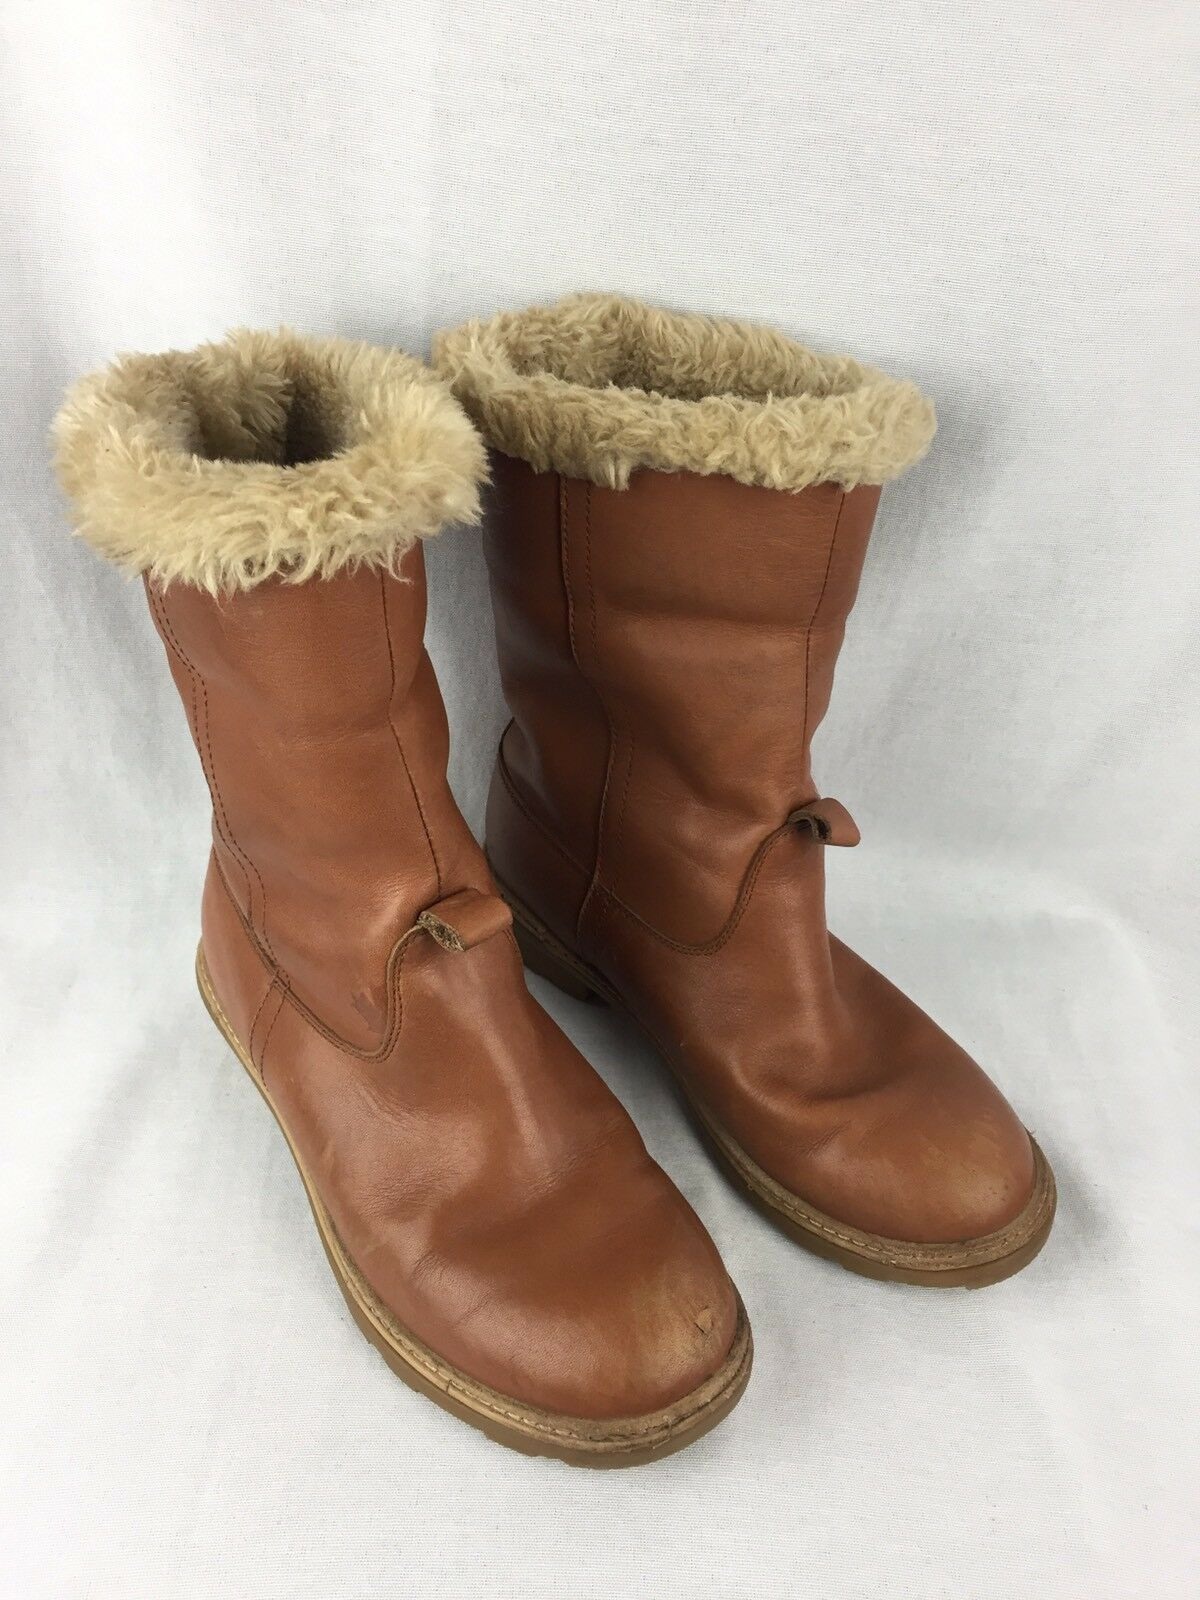 Pajar Canada Womens US 7.5 Tan Leather Mid-Calf Boots Pull On Winter Lined Boots Mid-Calf 1f01bd